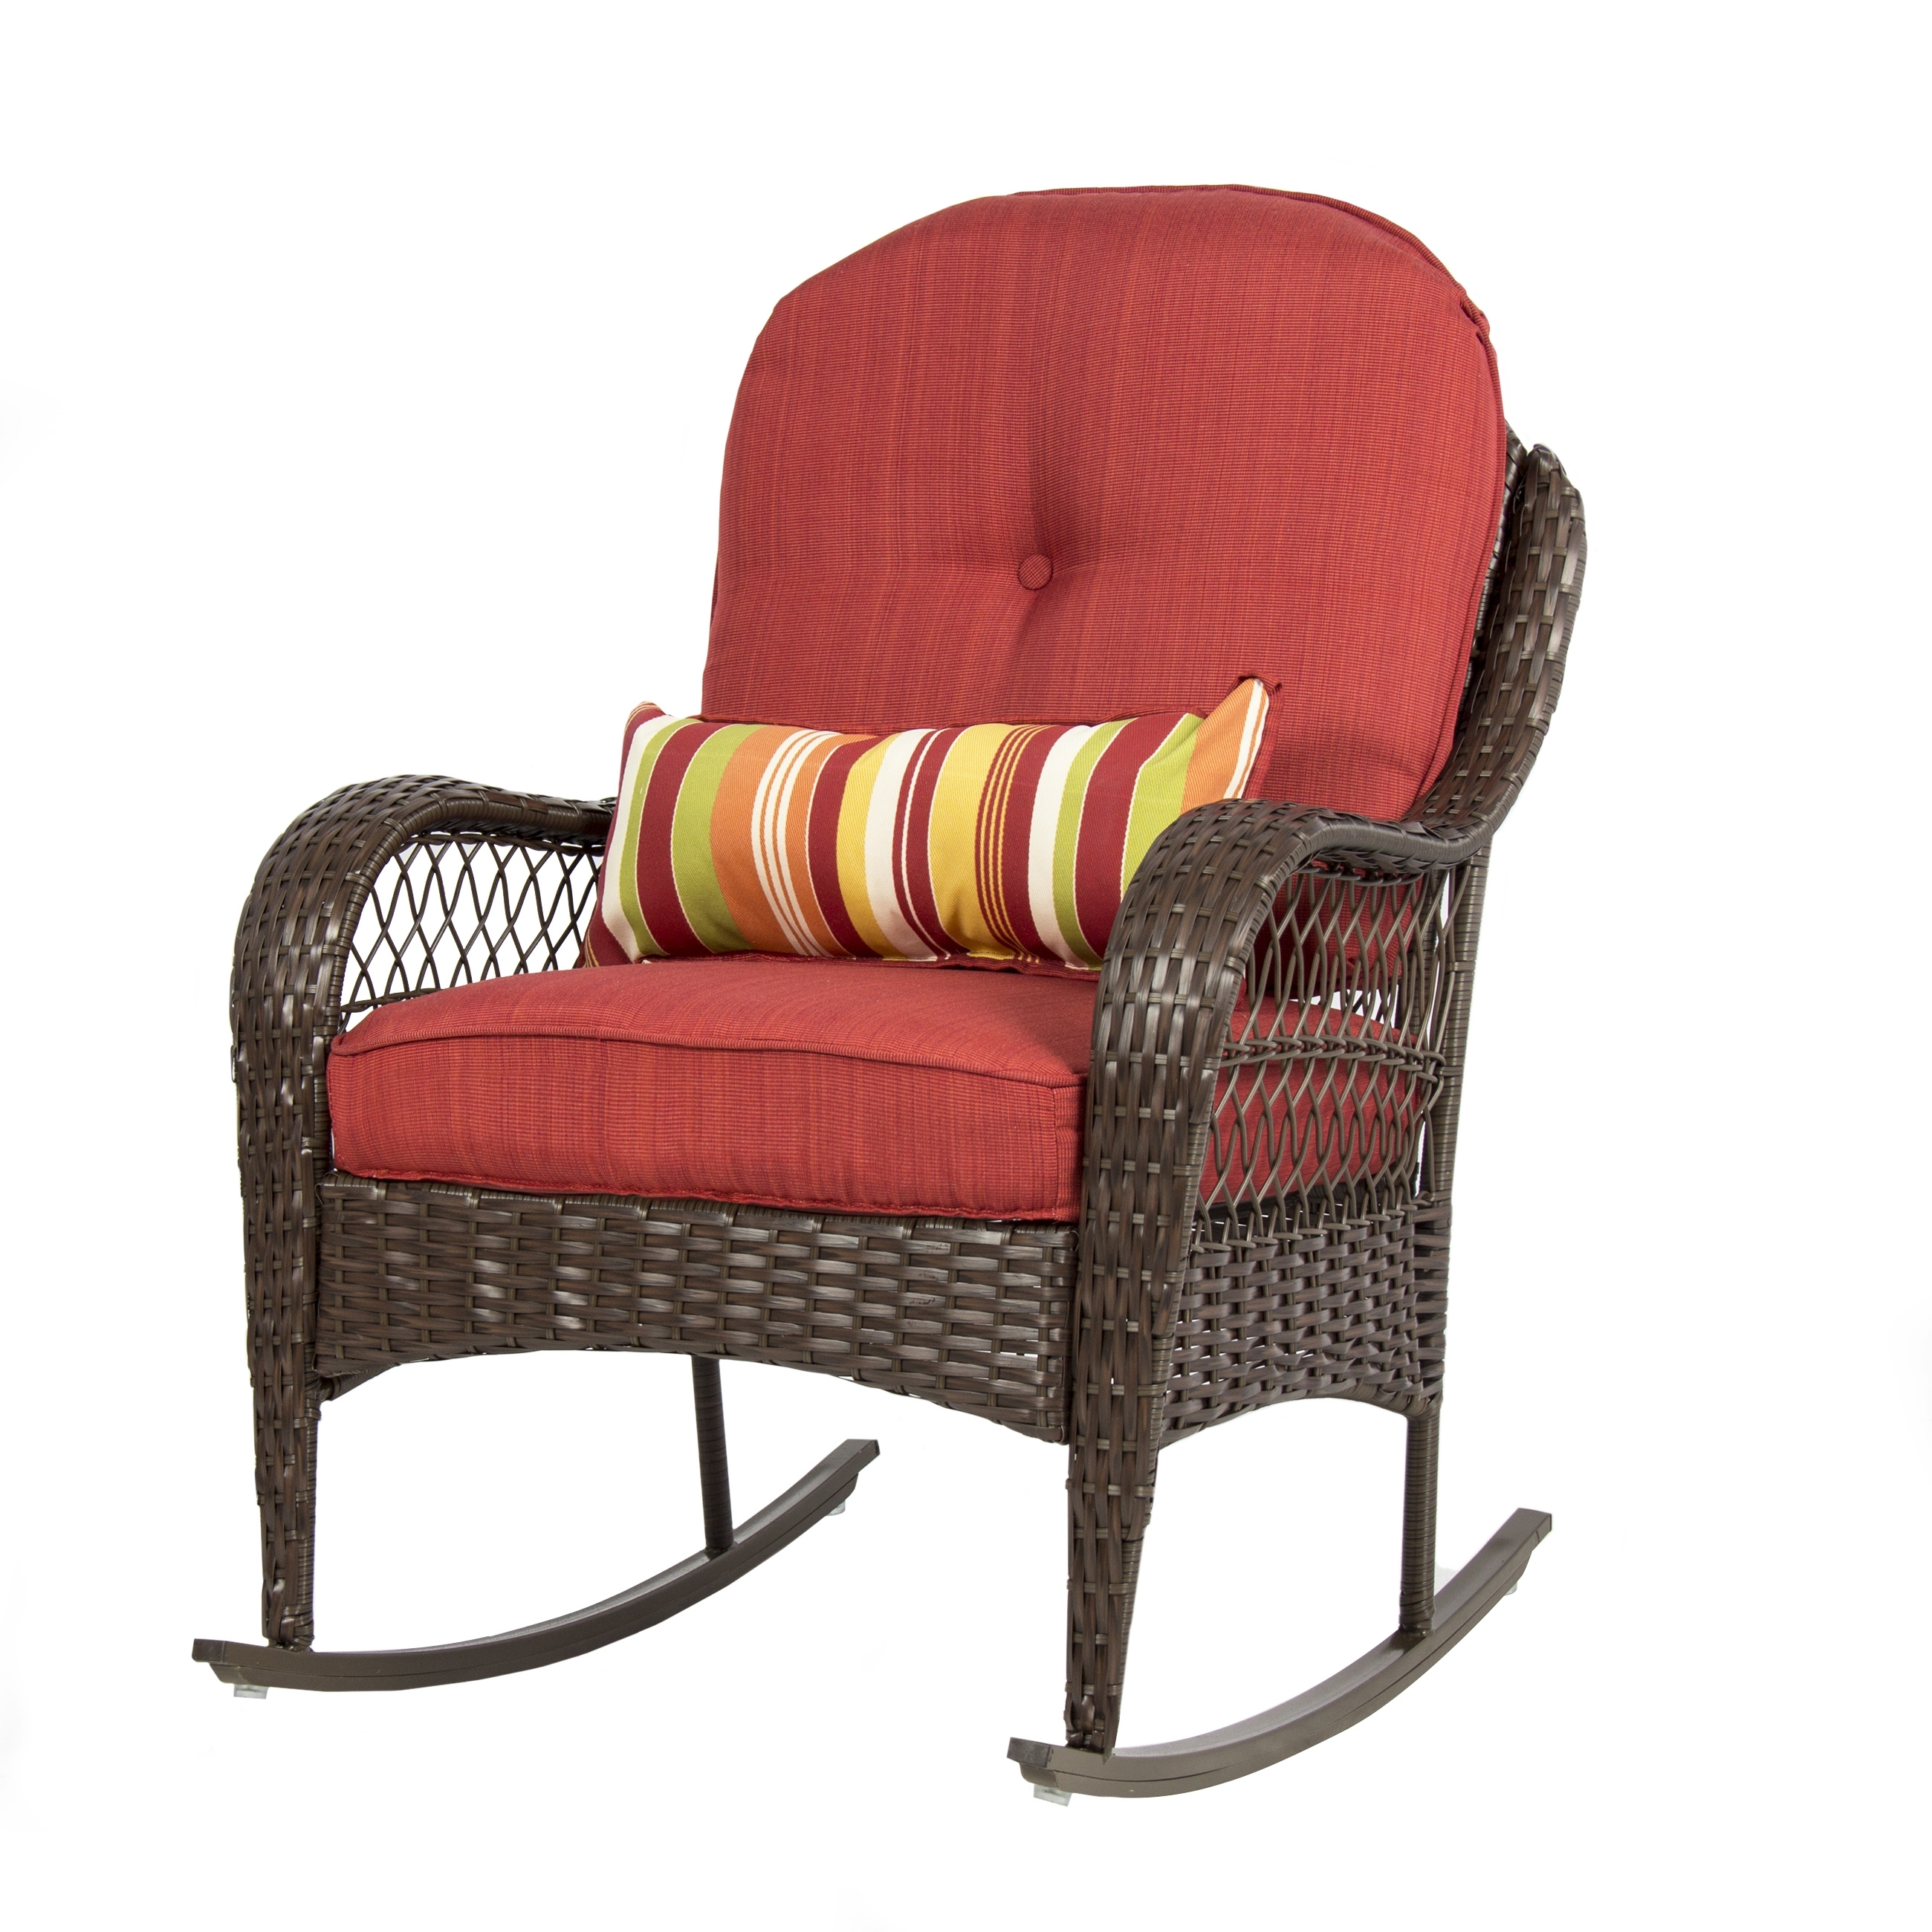 Red Patio Rocking Chairs Throughout Recent Bestchoiceproducts: Best Choice Products Wicker Rocking Chair Patio (View 9 of 15)